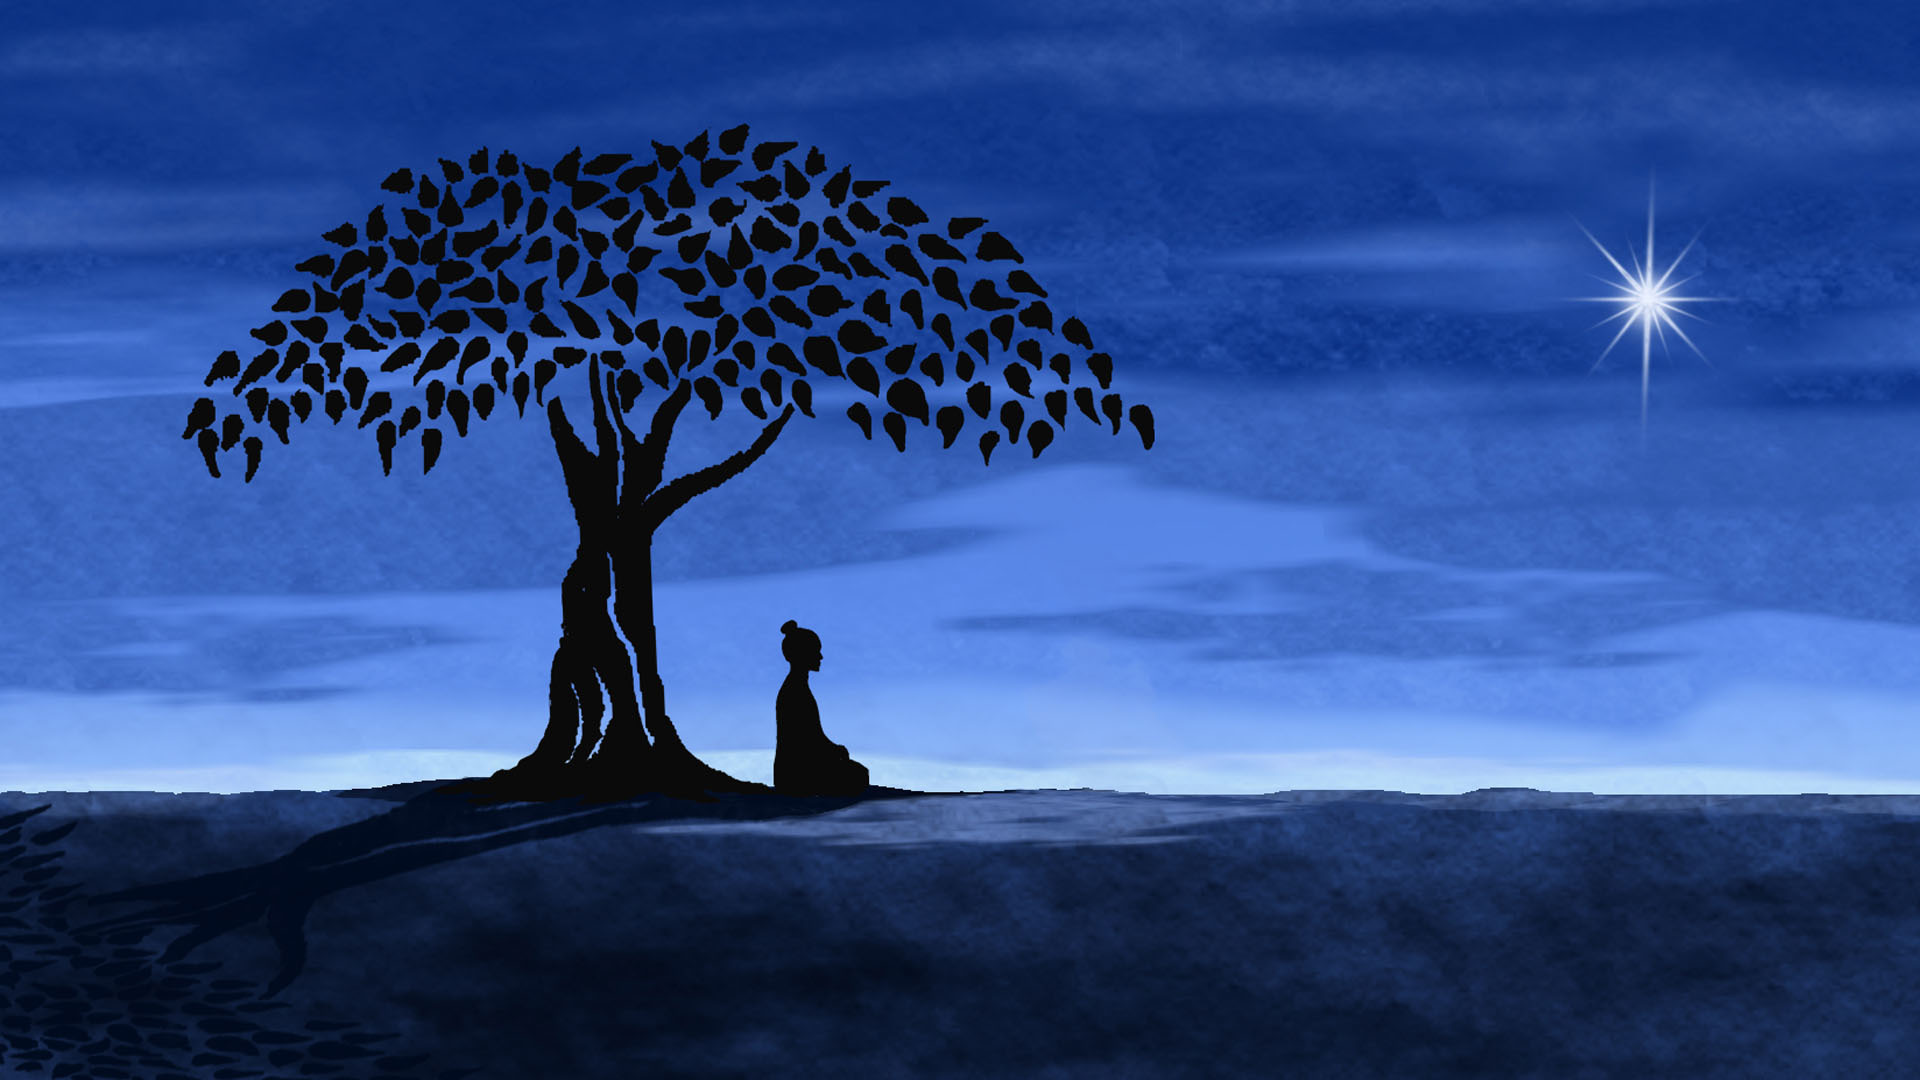 HD Meditation Desktop Wallpapers 1920x1080